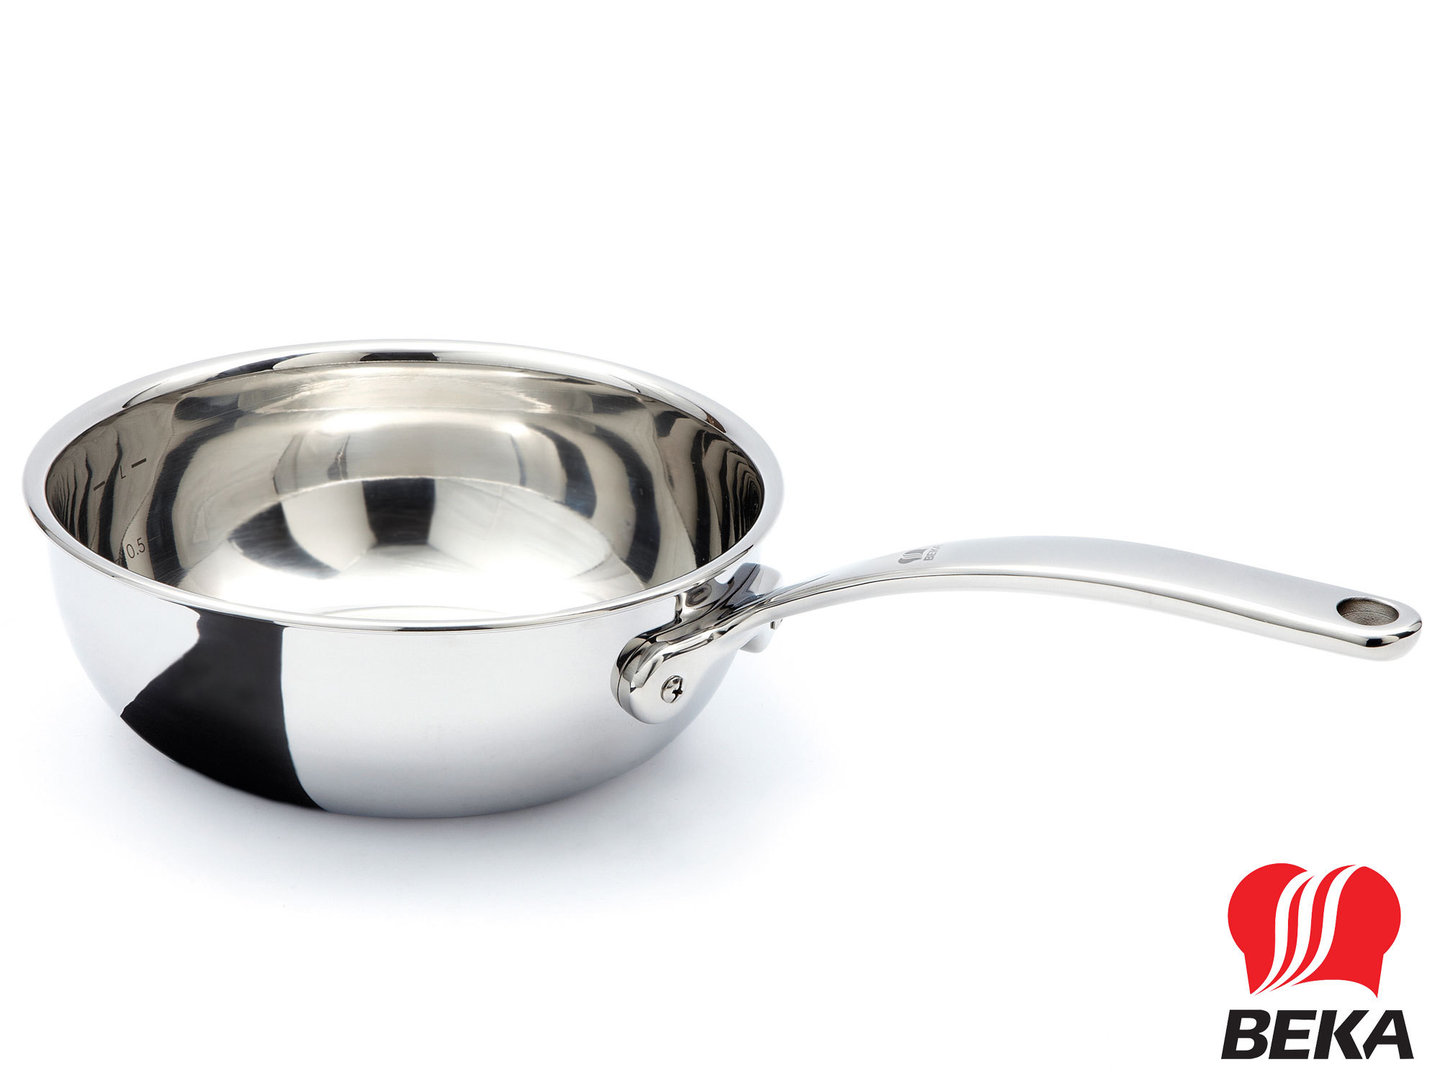 BEKA conical 3-ply stainless steel saucepot TRI-LUX 20 cm